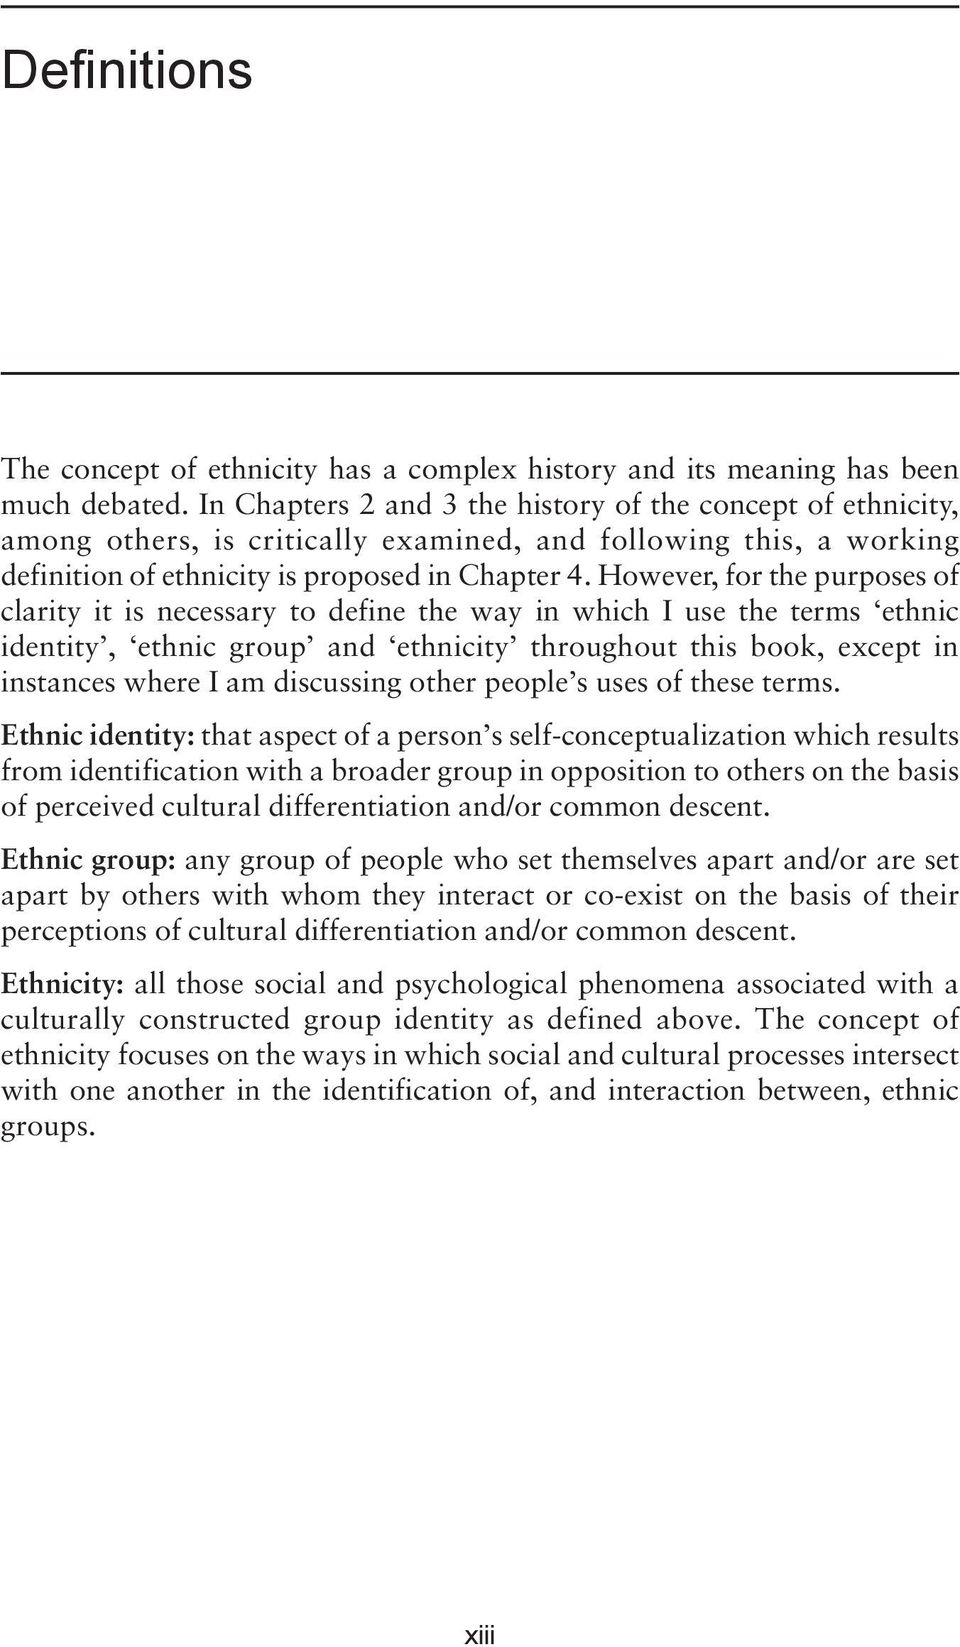 However, for the purposes of clarity it is necessary to define the way in which I use the terms ethnic identity, ethnic group and ethnicity throughout this book, except in instances where I am